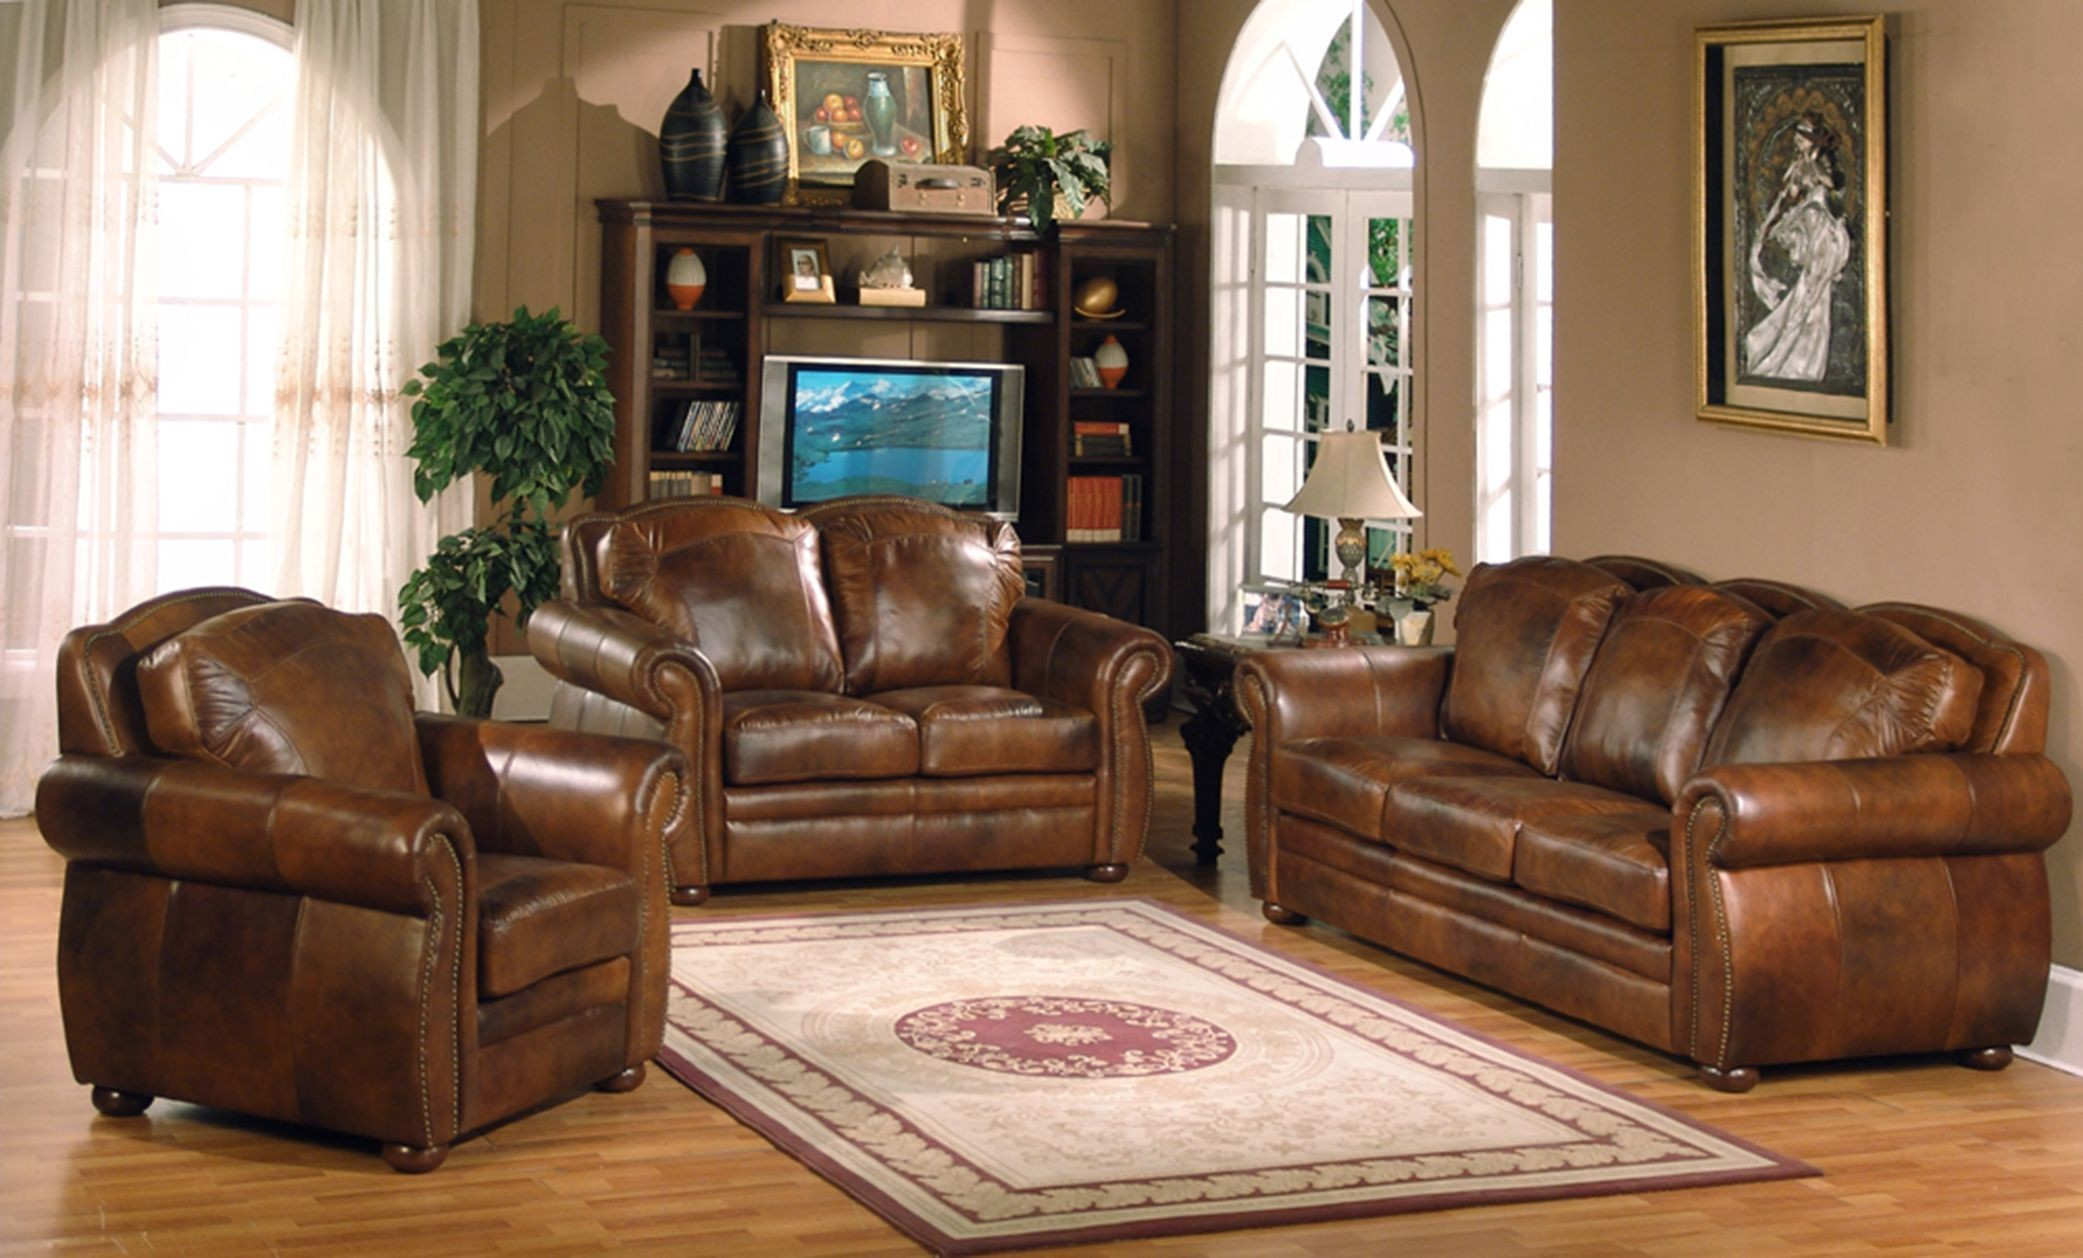 arizona marco living room set from leather italia 1444 6110 0304234 coleman furniture. Black Bedroom Furniture Sets. Home Design Ideas